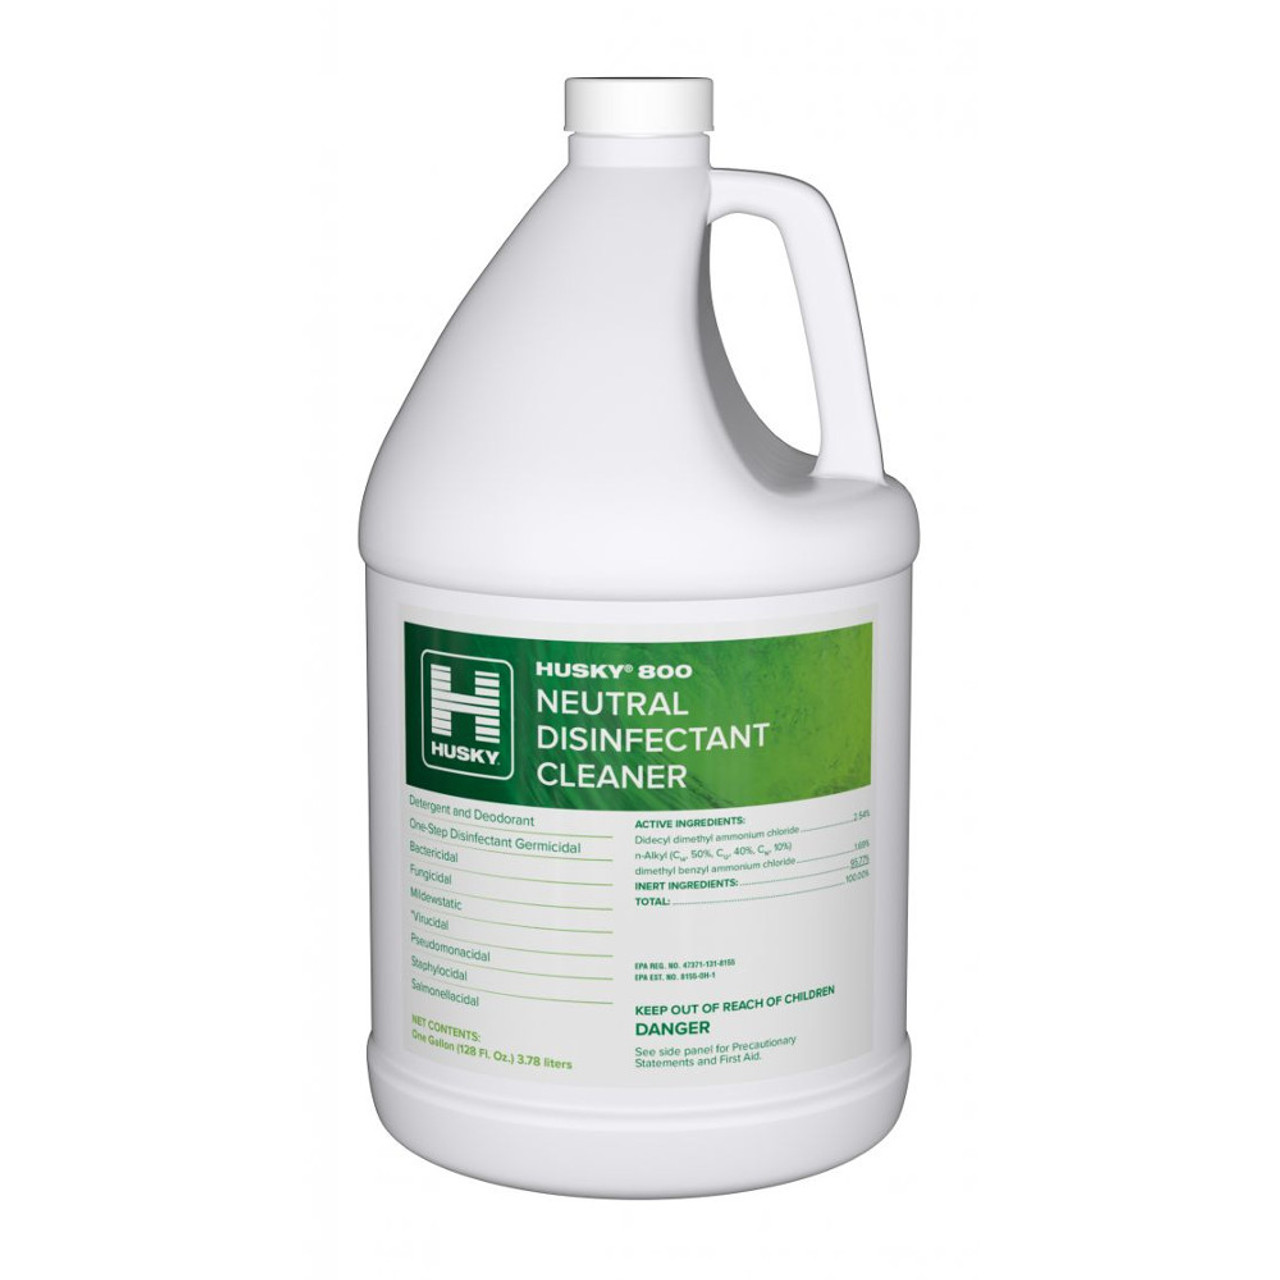 Husky 800 N/D Germicidal Cleaner is a neutral disinfectant cleaner perfect for finished non porous surfaces because of its neutral pH.